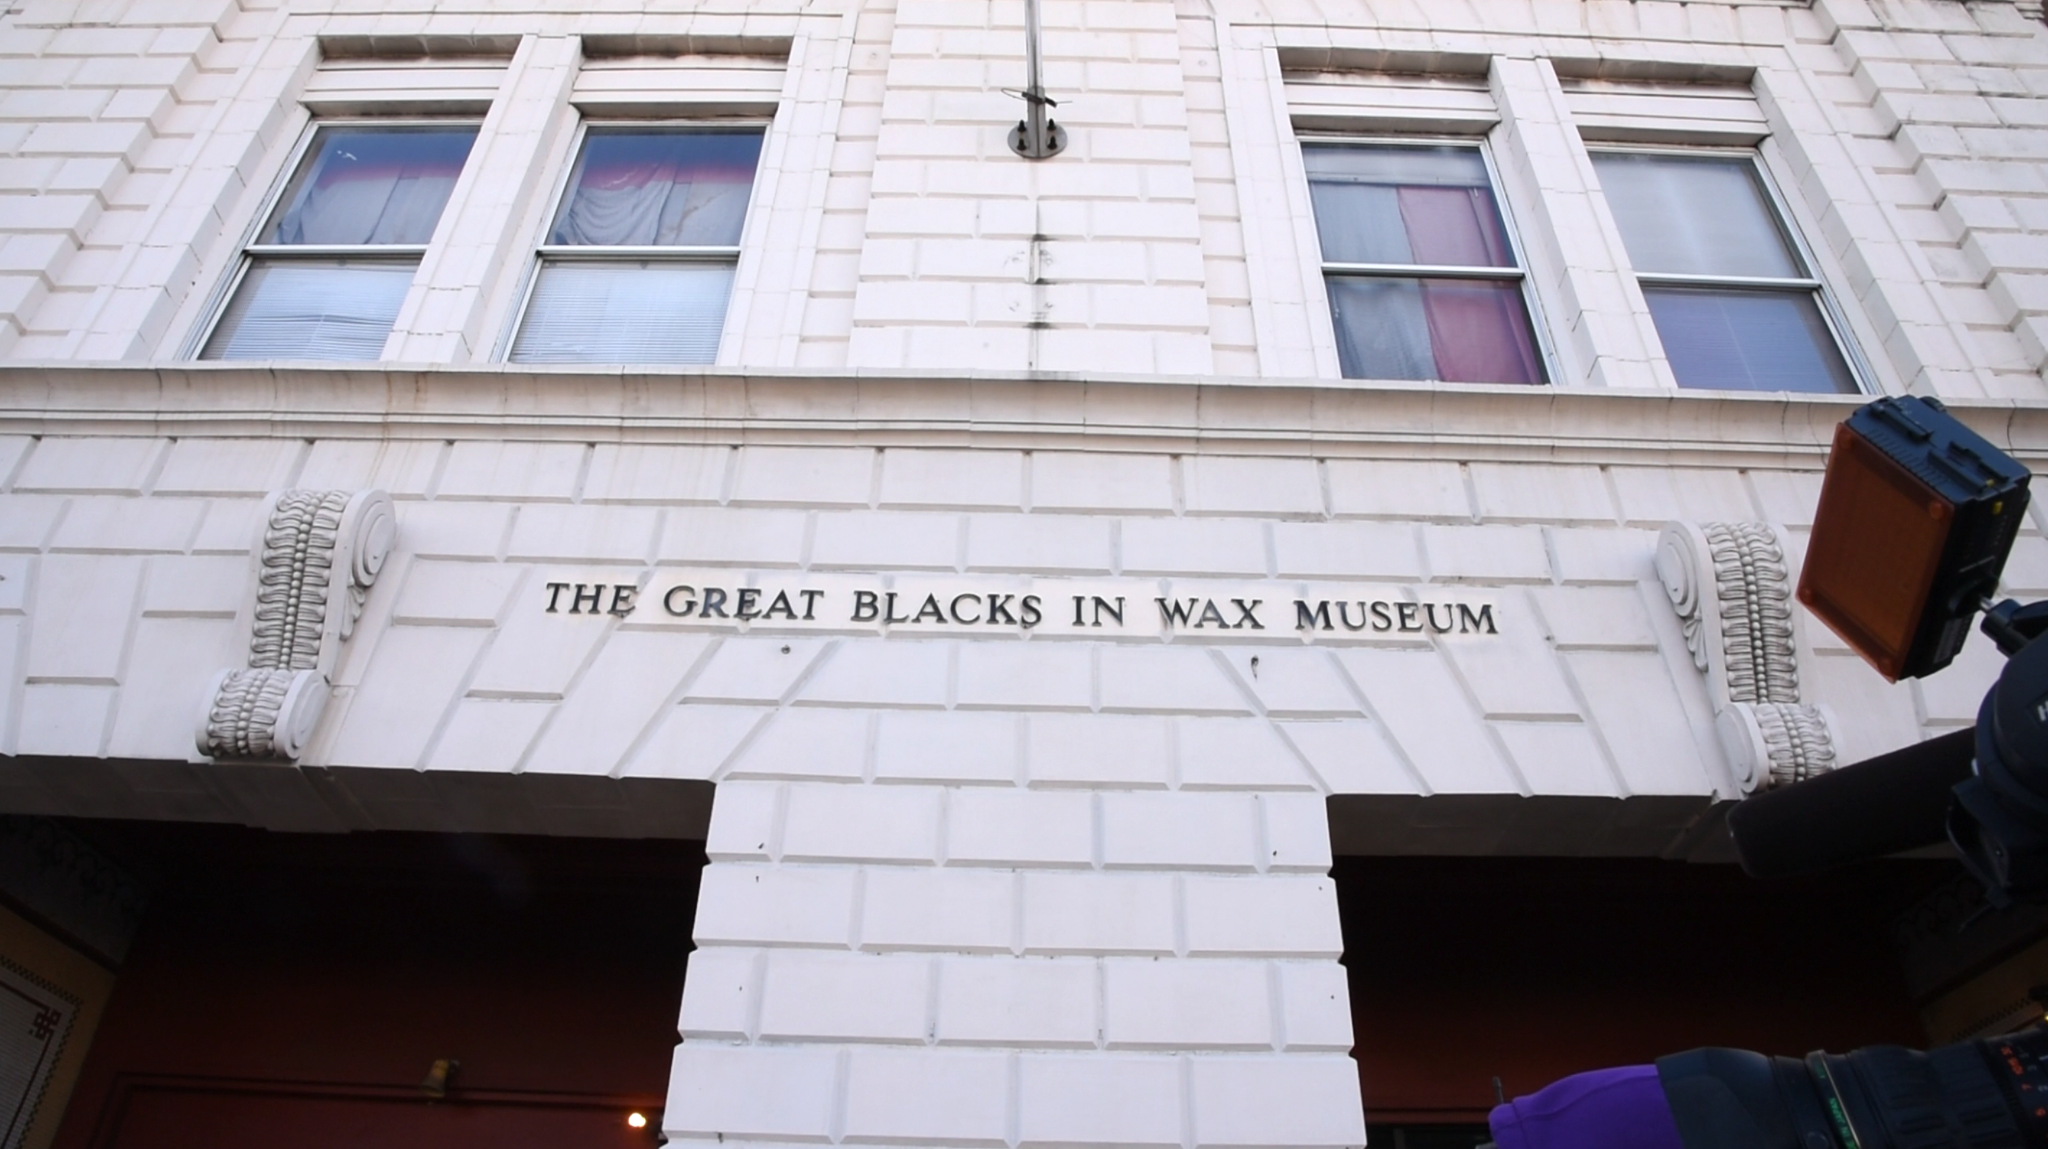 City Announces Expansion Of Great Blacks In Wax Museum Baltimore Sun